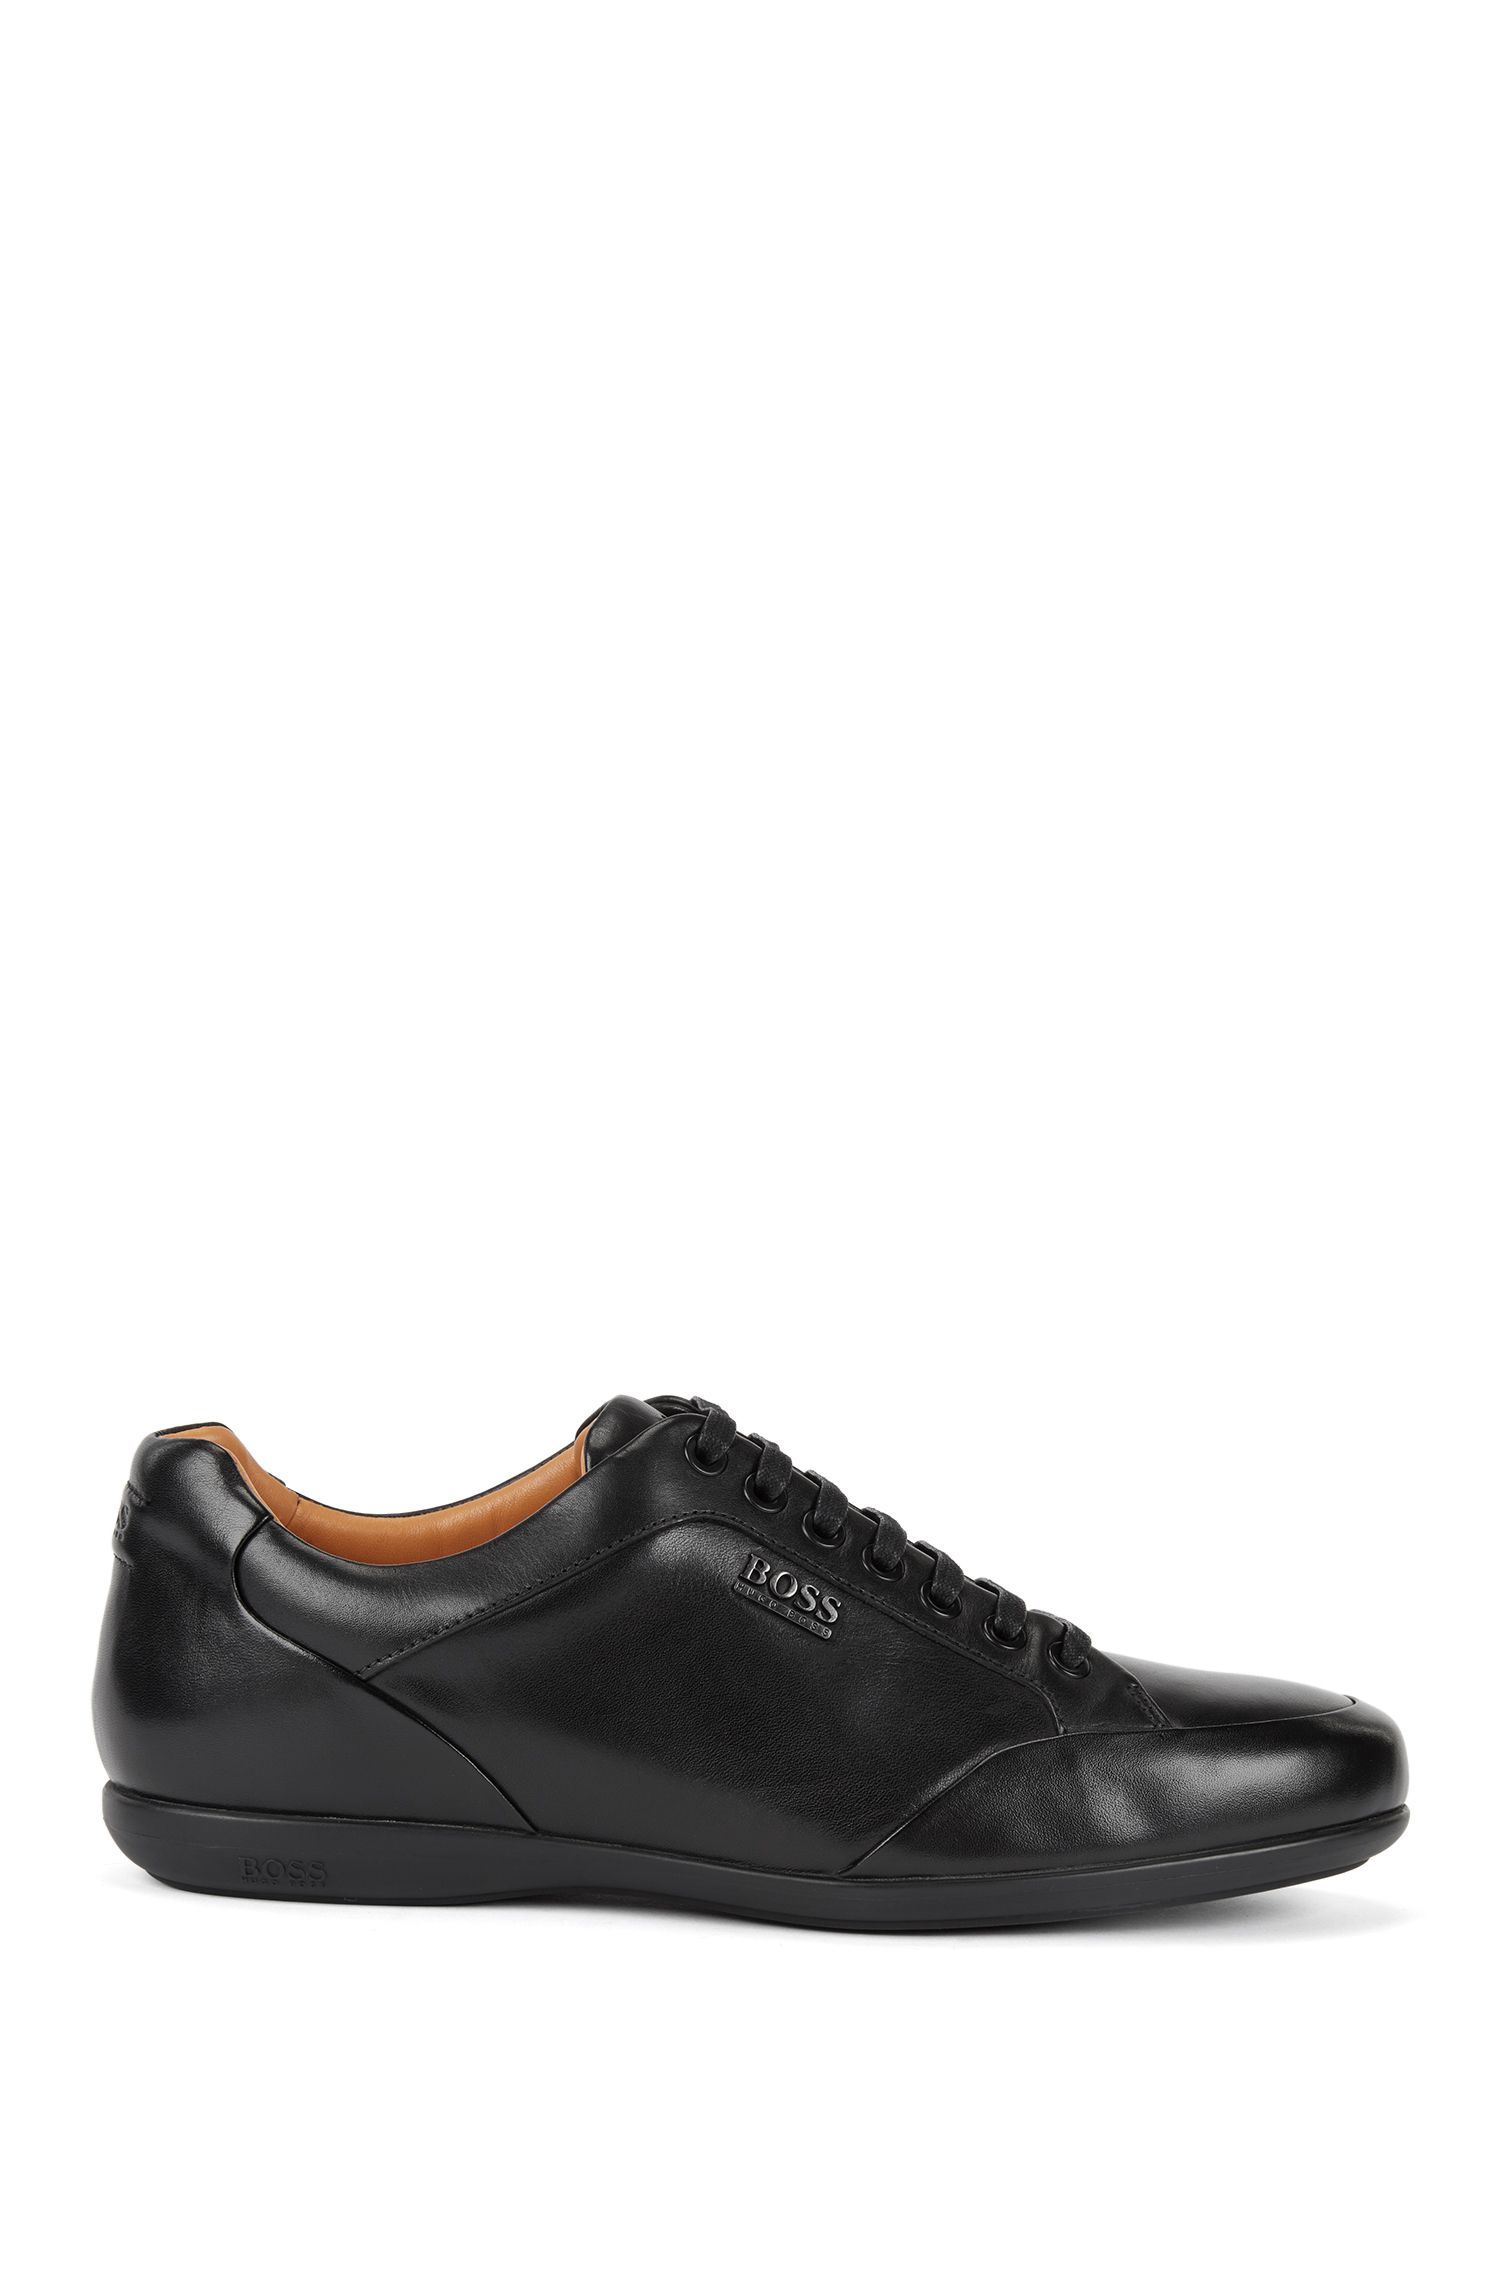 Lace-up trainers in burnished leather with branded hardware, Black